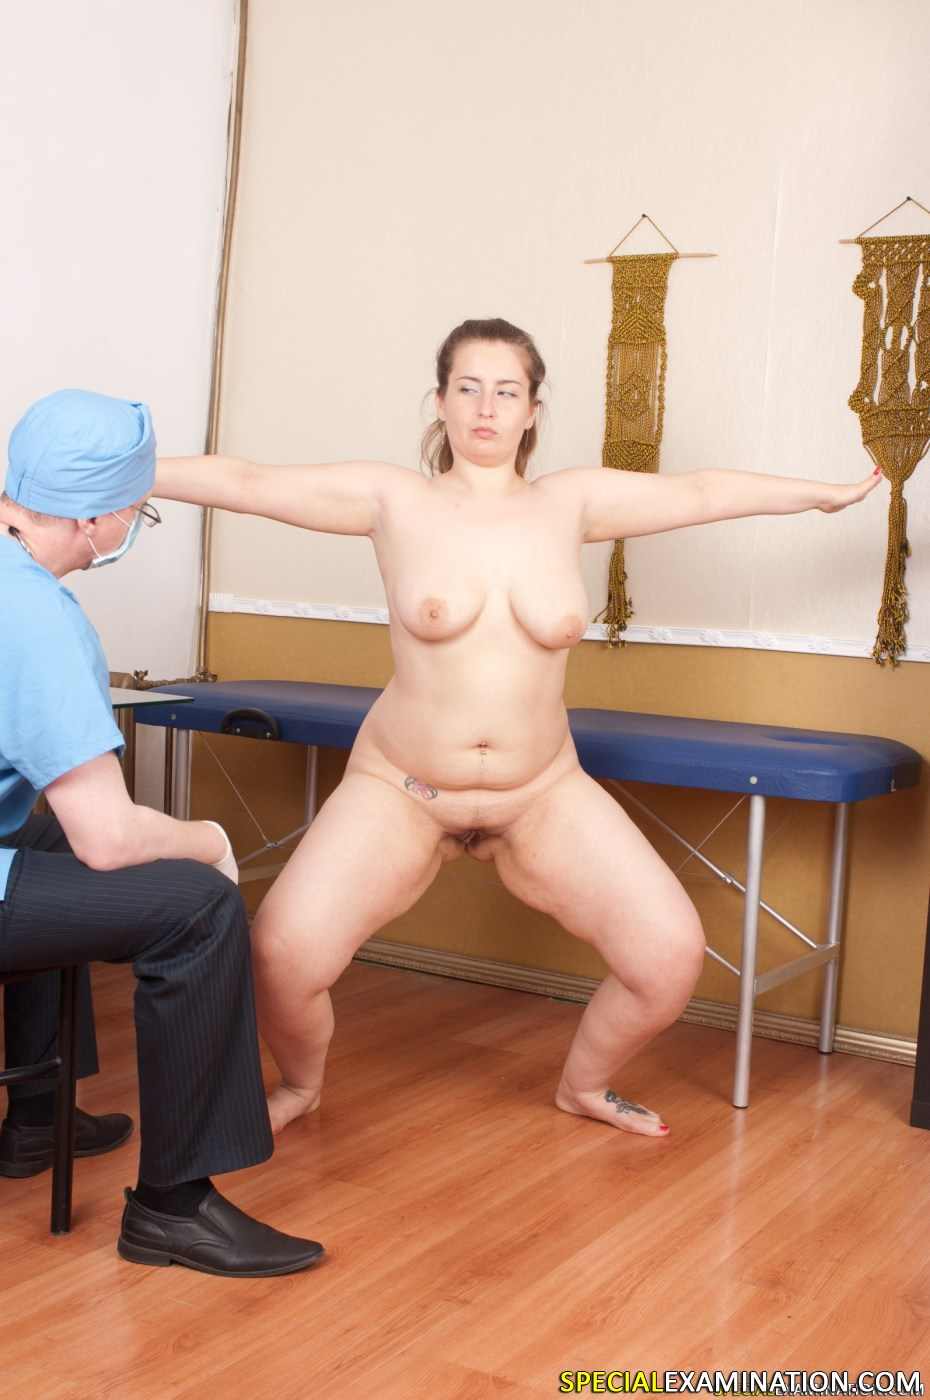 Guy anal exam